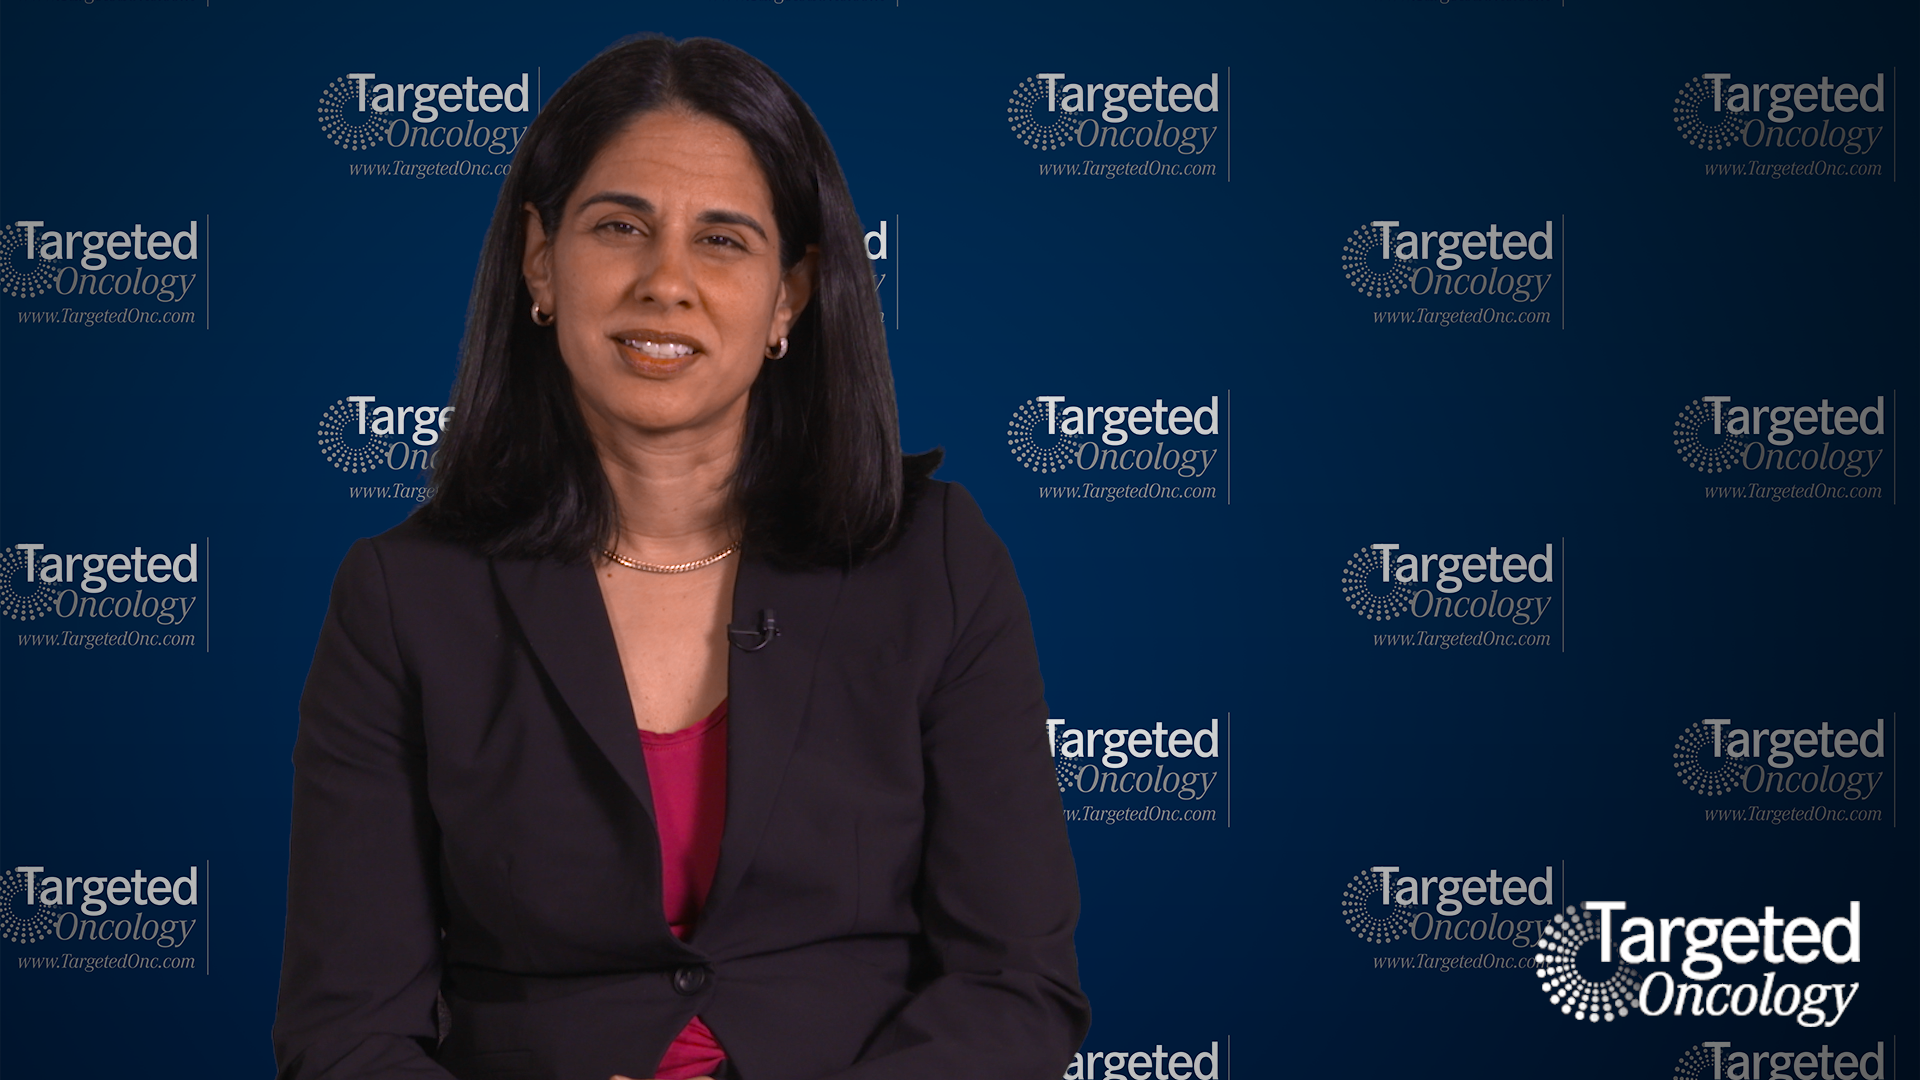 CDK4/6 Inhibitors & Endocrine Therapy in Breast Cancer